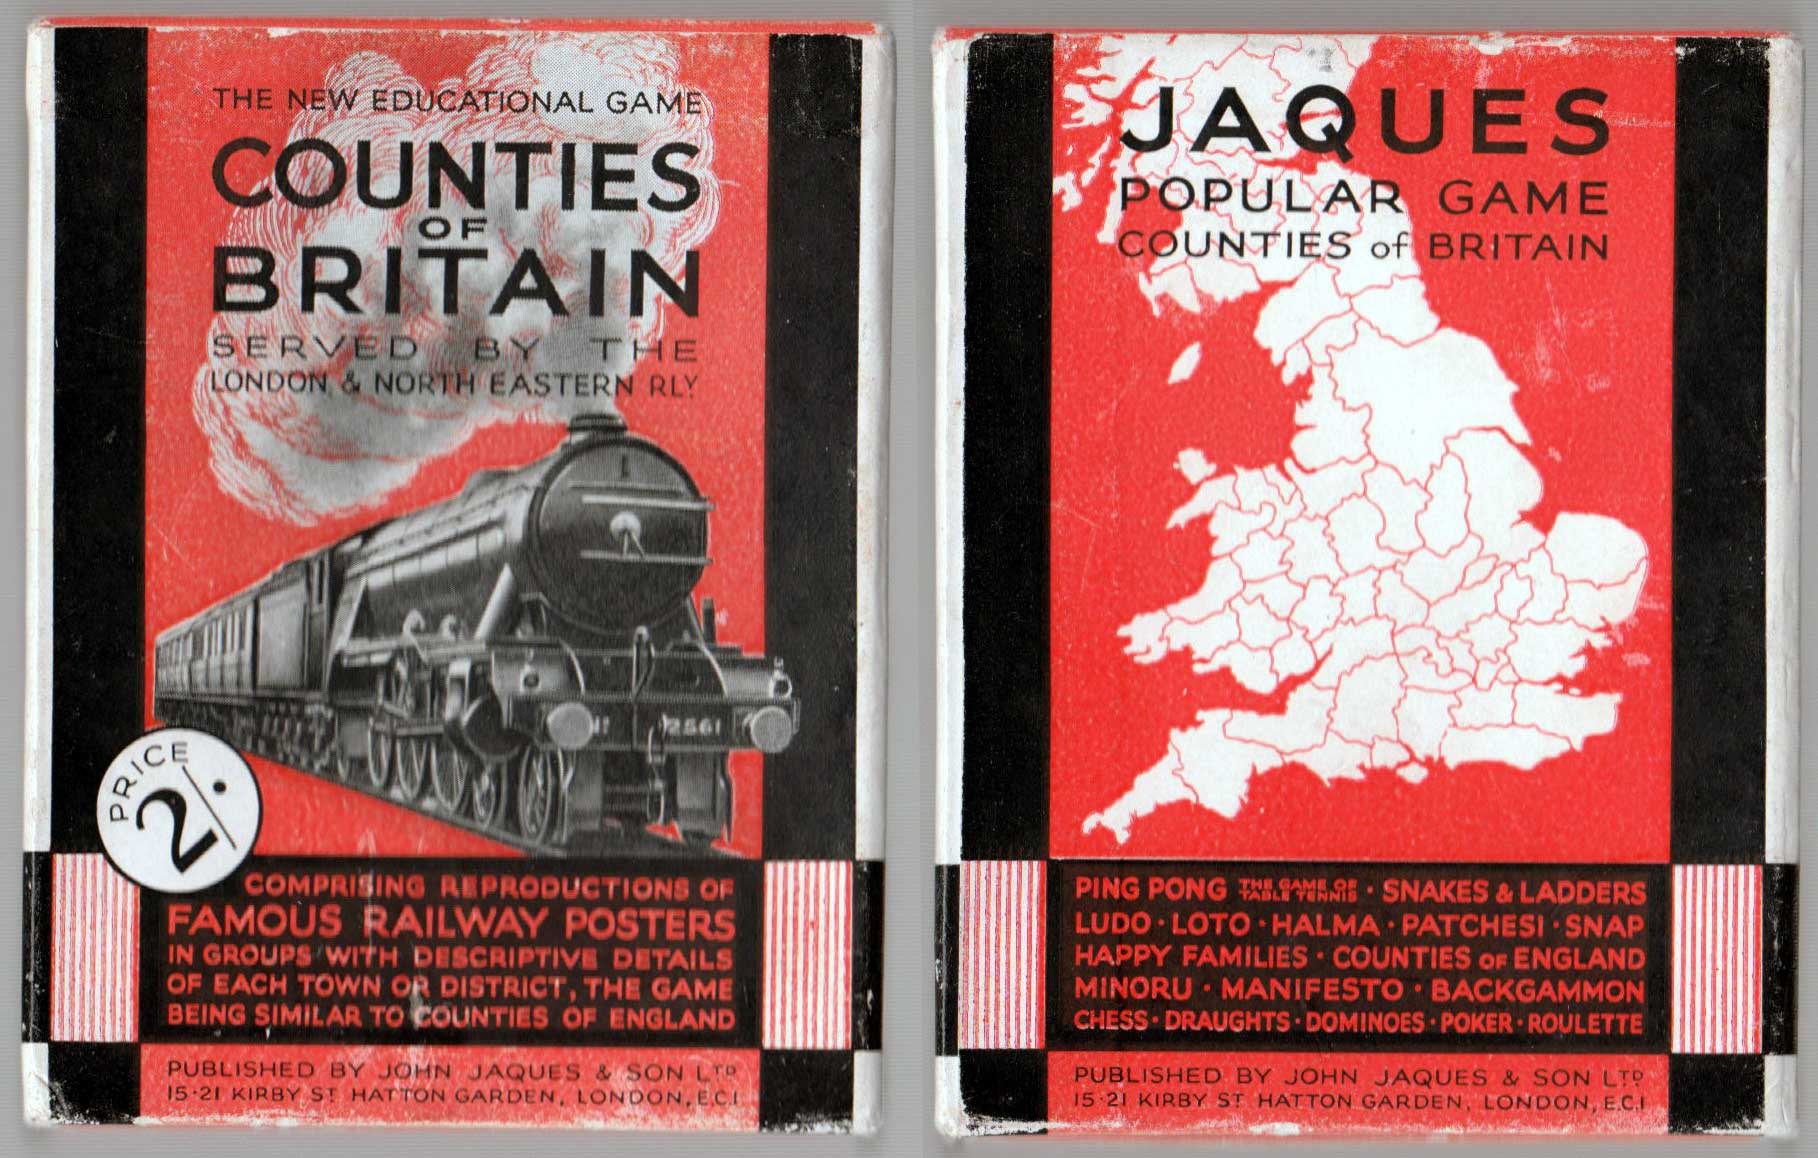 Counties of Britain by John Jaques & Son Ltd. c.1930